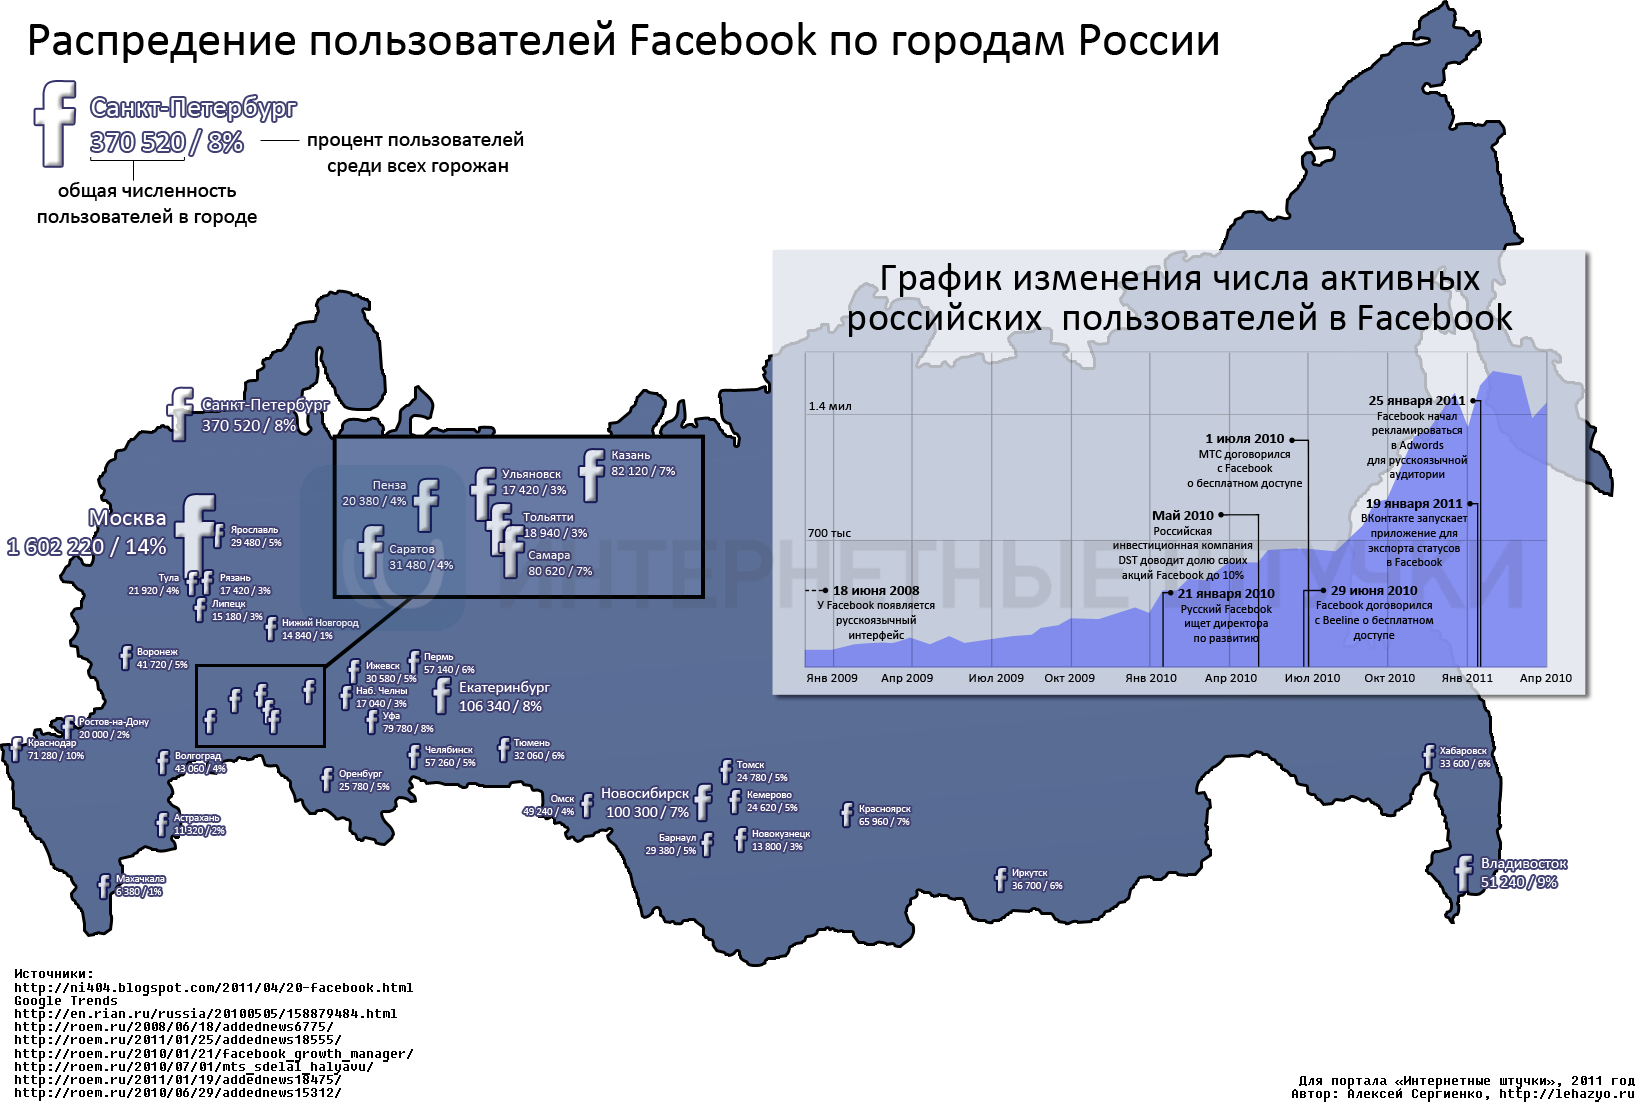 facebook in russia analysis As facebook celebrates its 10th anniversary, russia direct analyzes the challenges the company faces in russia.